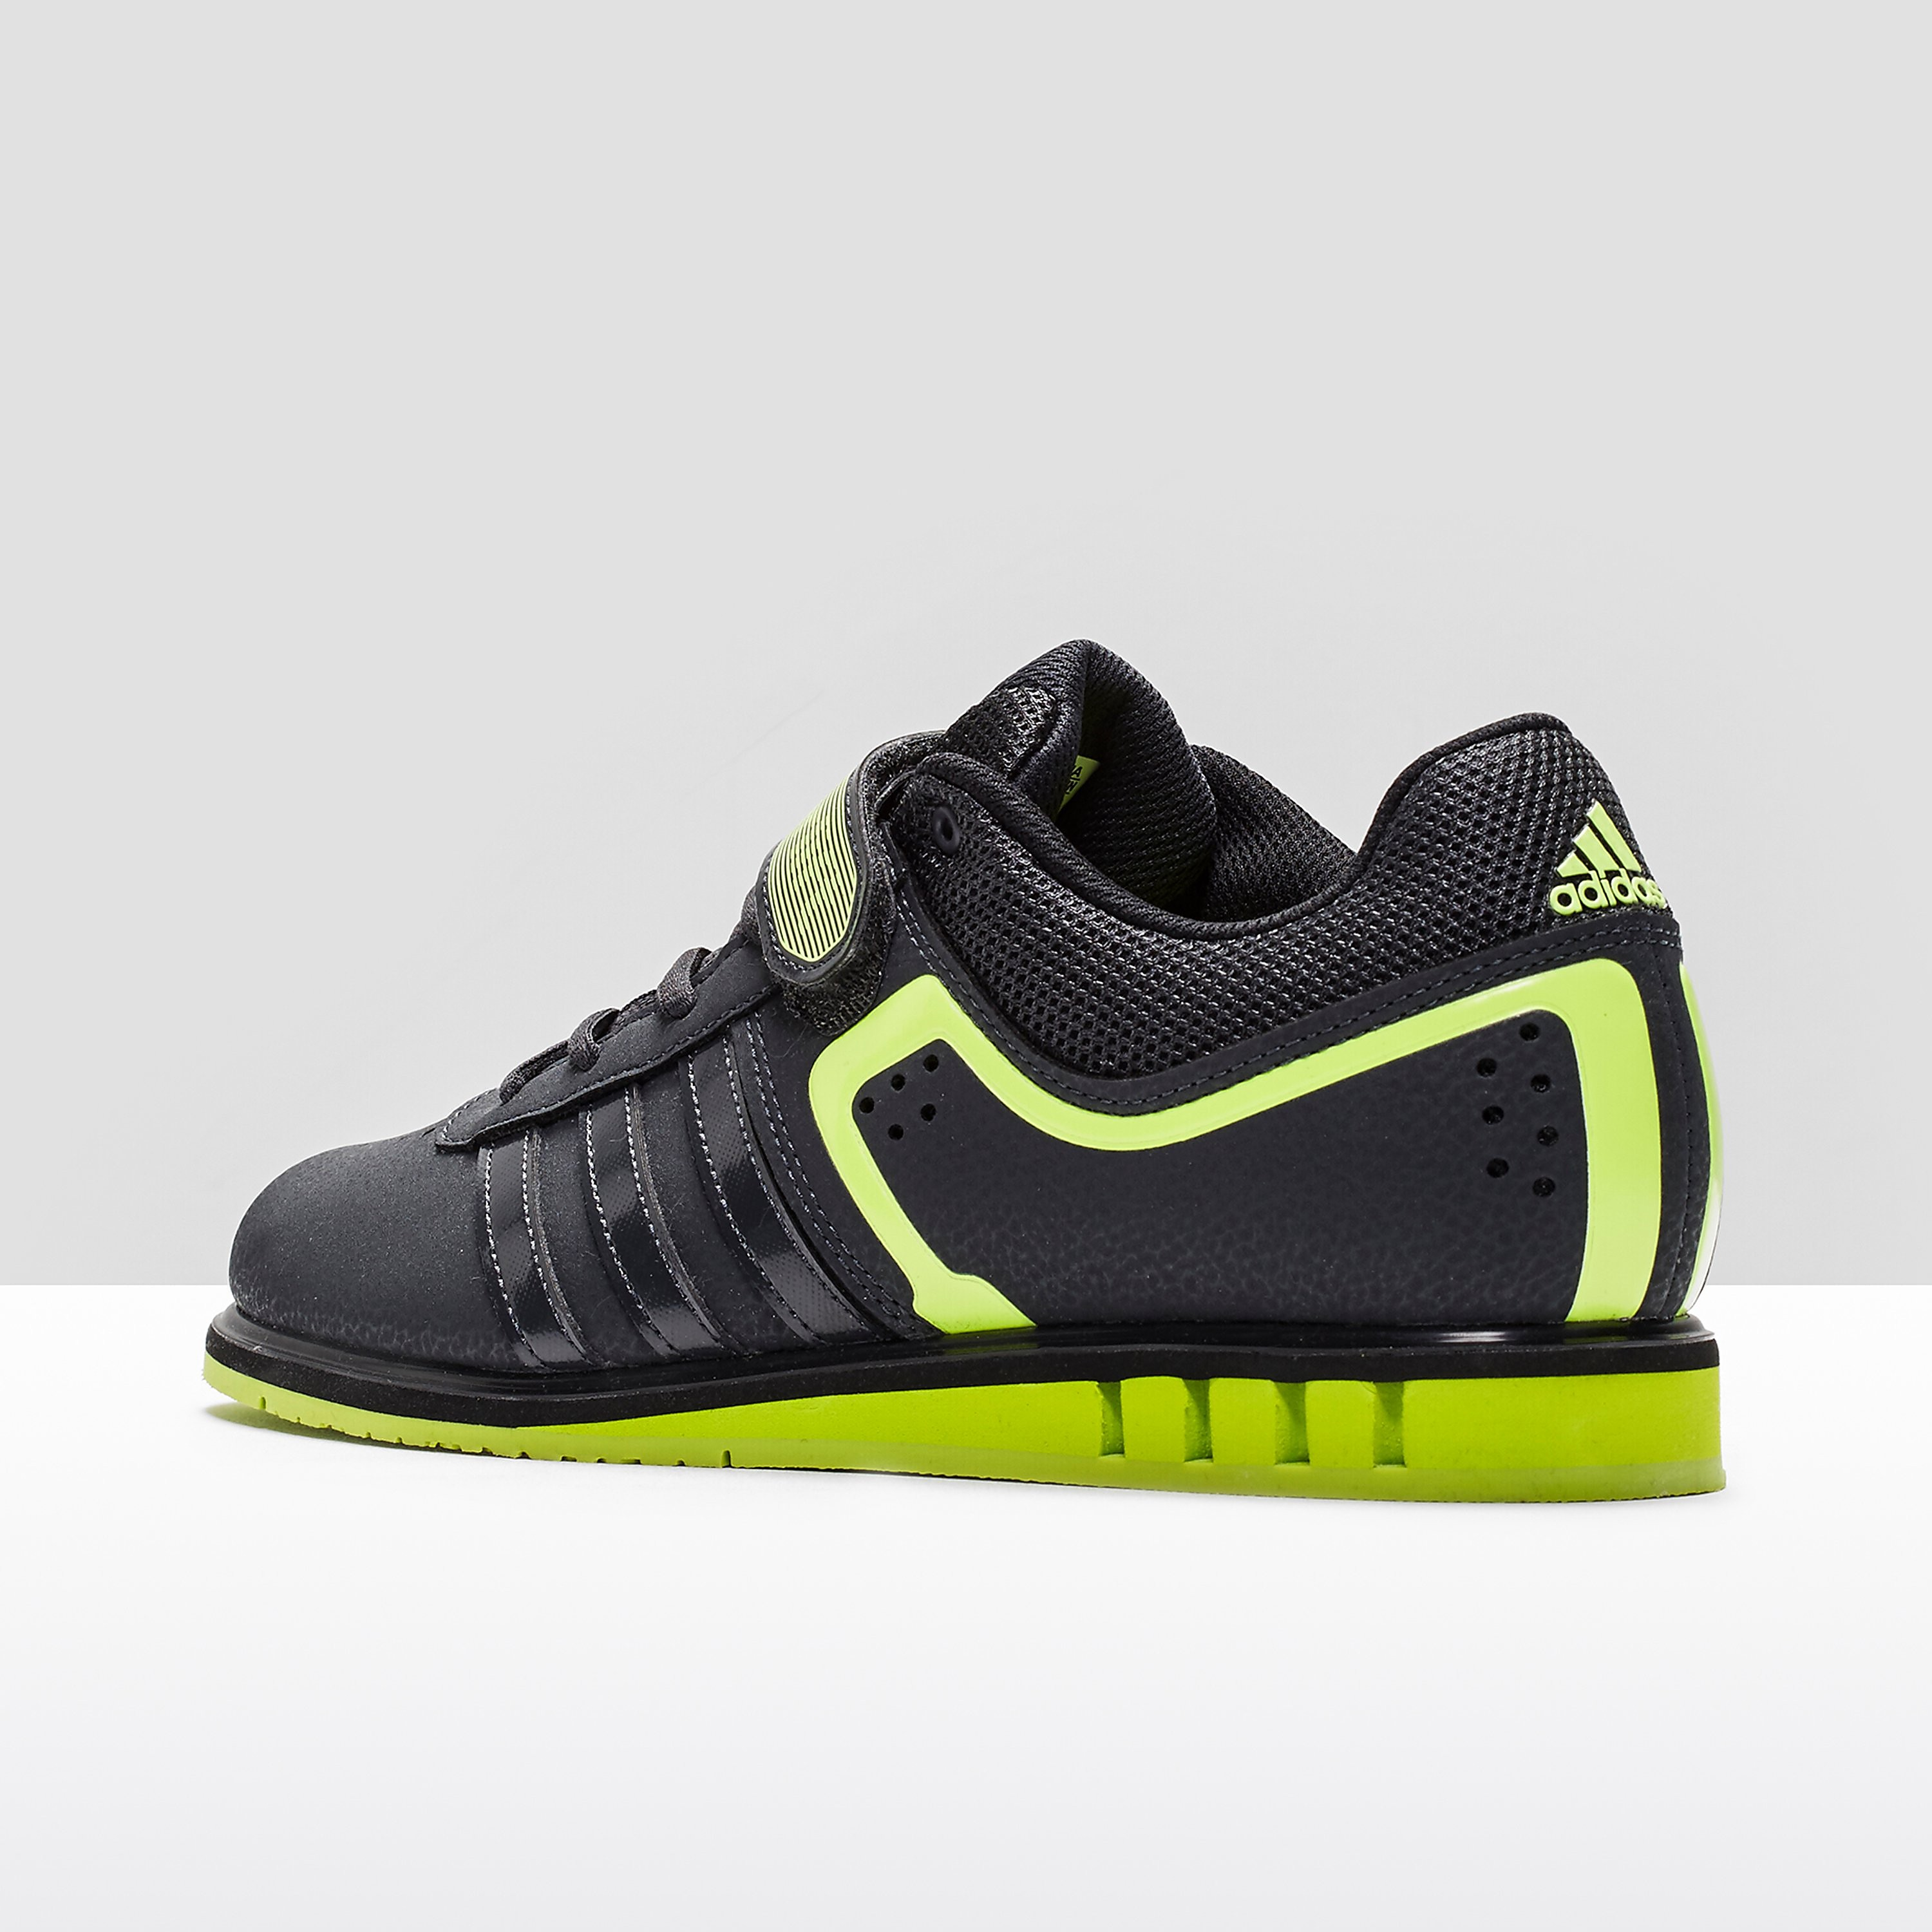 adidas Powerlift 2 Adult Weightlifting Shoe